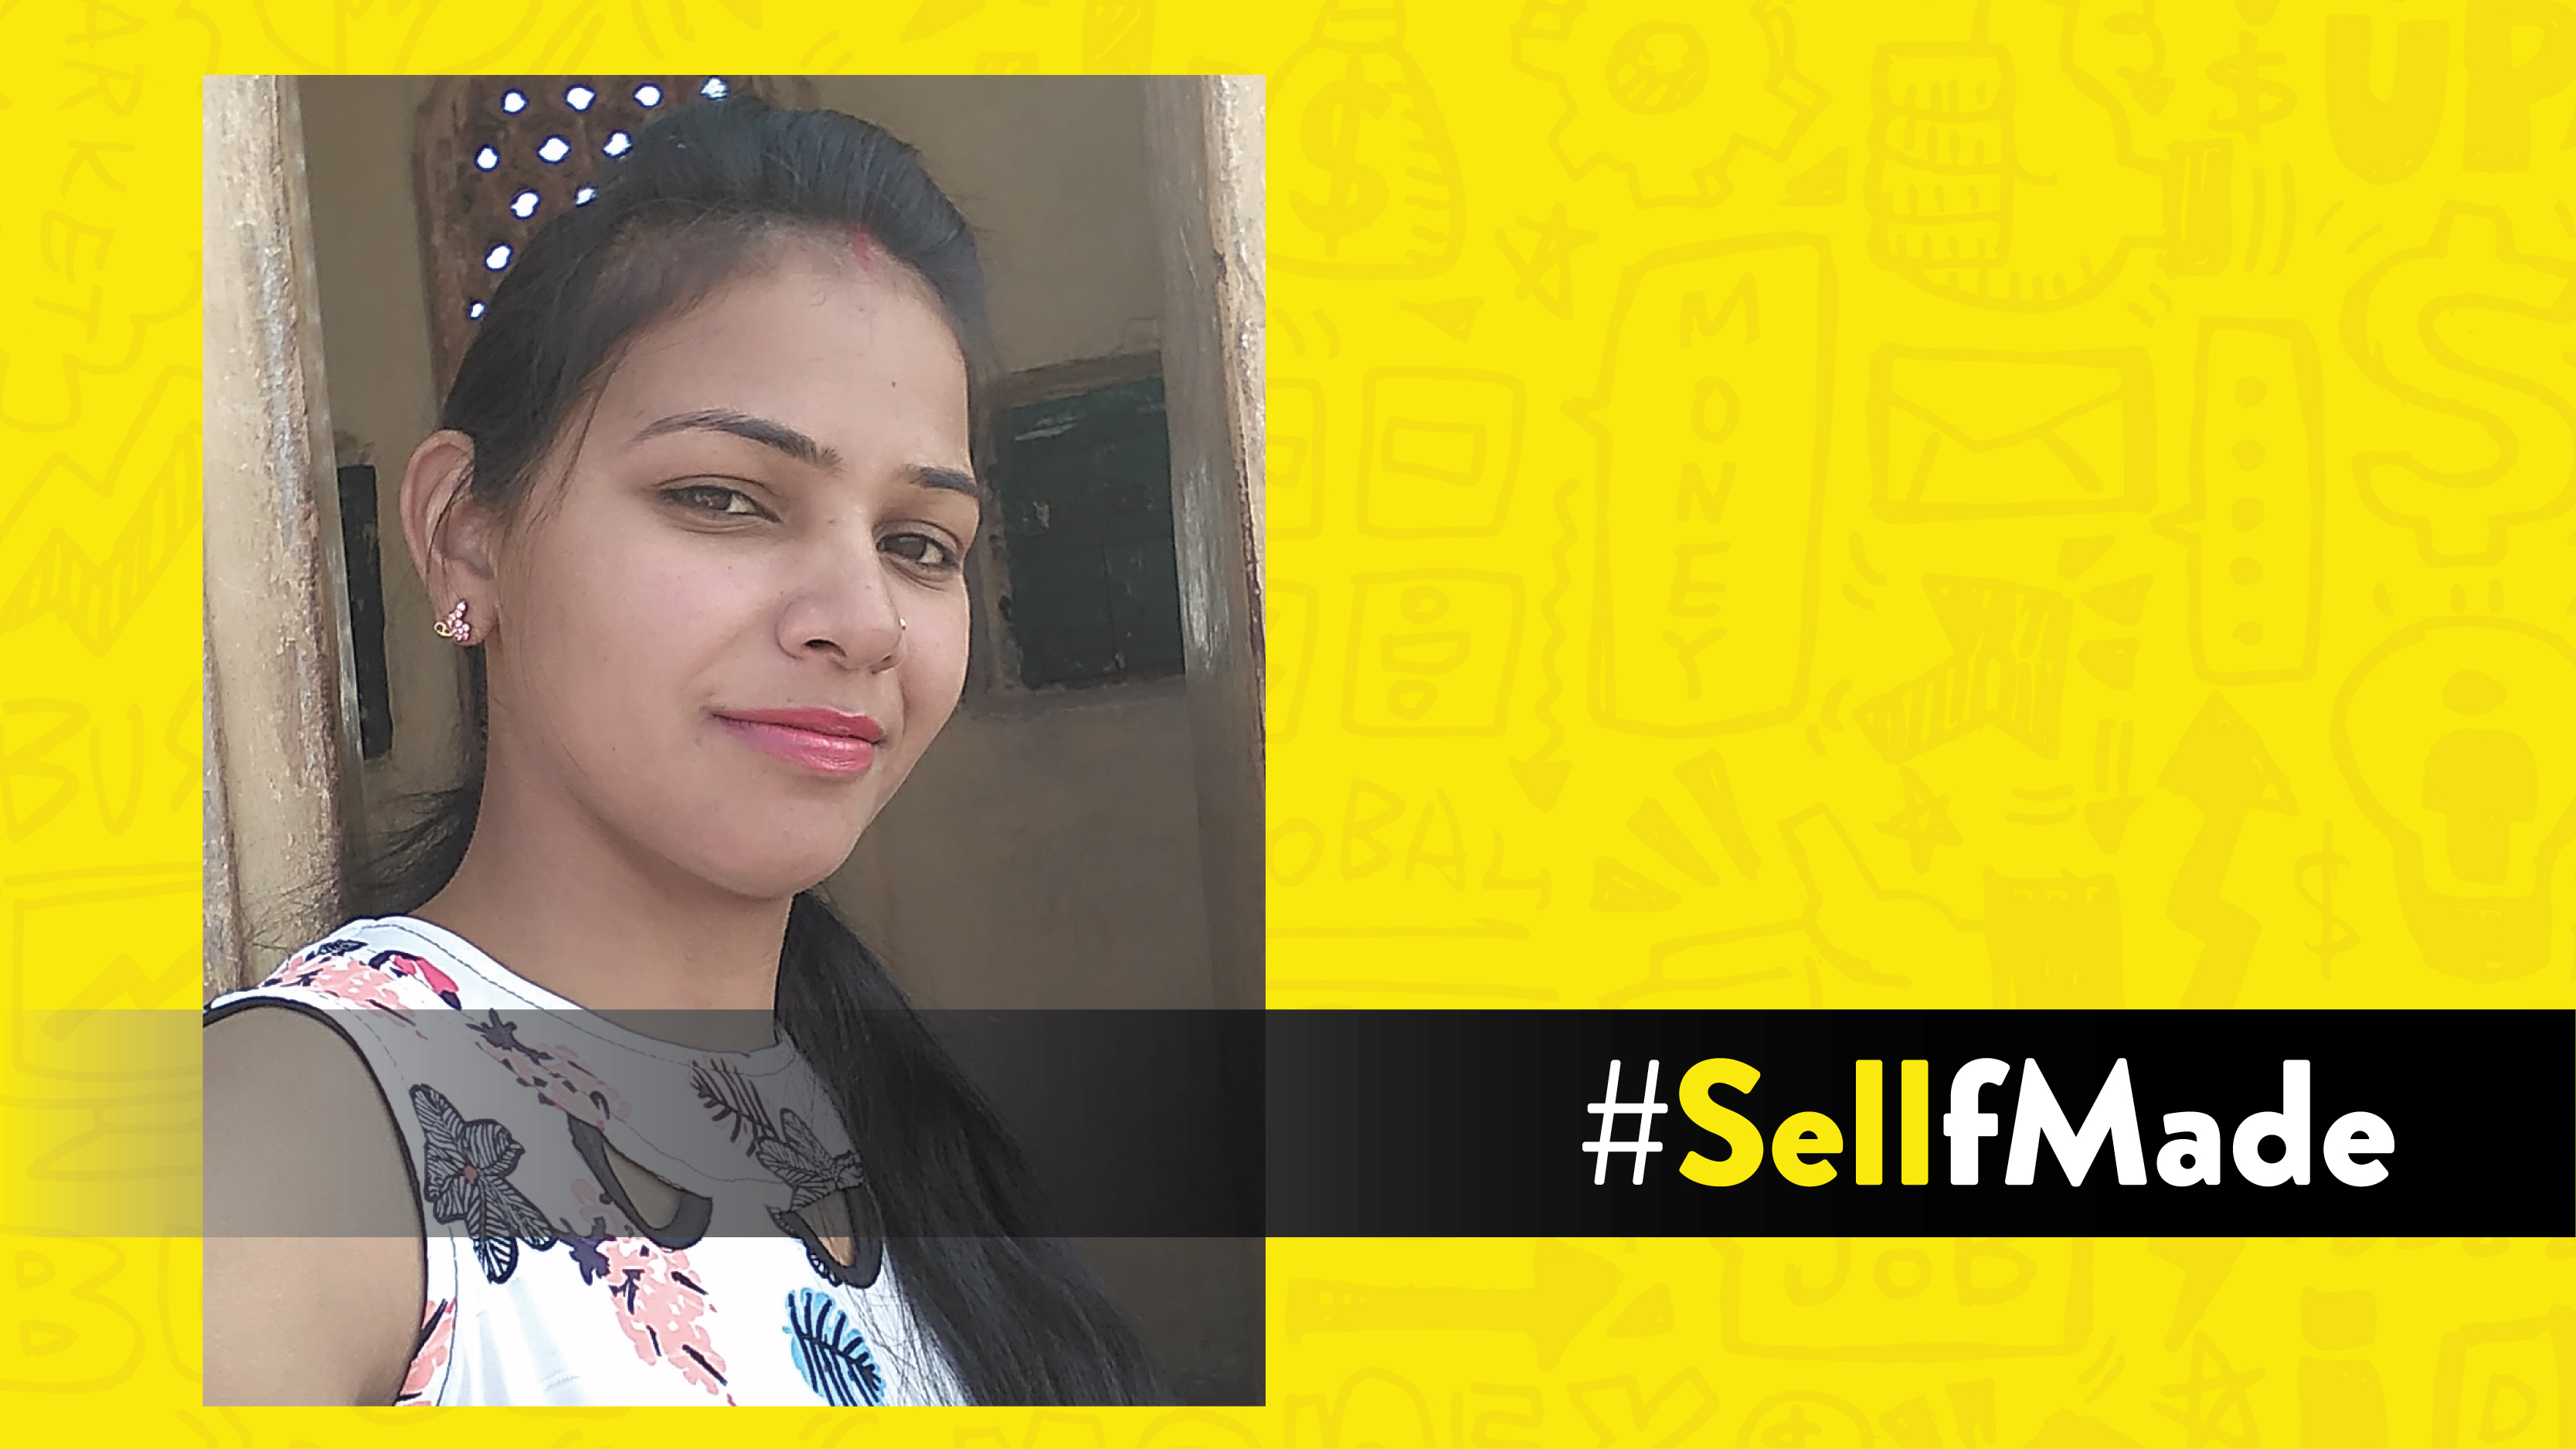 #SellfMade: From homemaker to hotshot entrepreneur — this Flipkart seller overcame adversity to fulfil her dreams